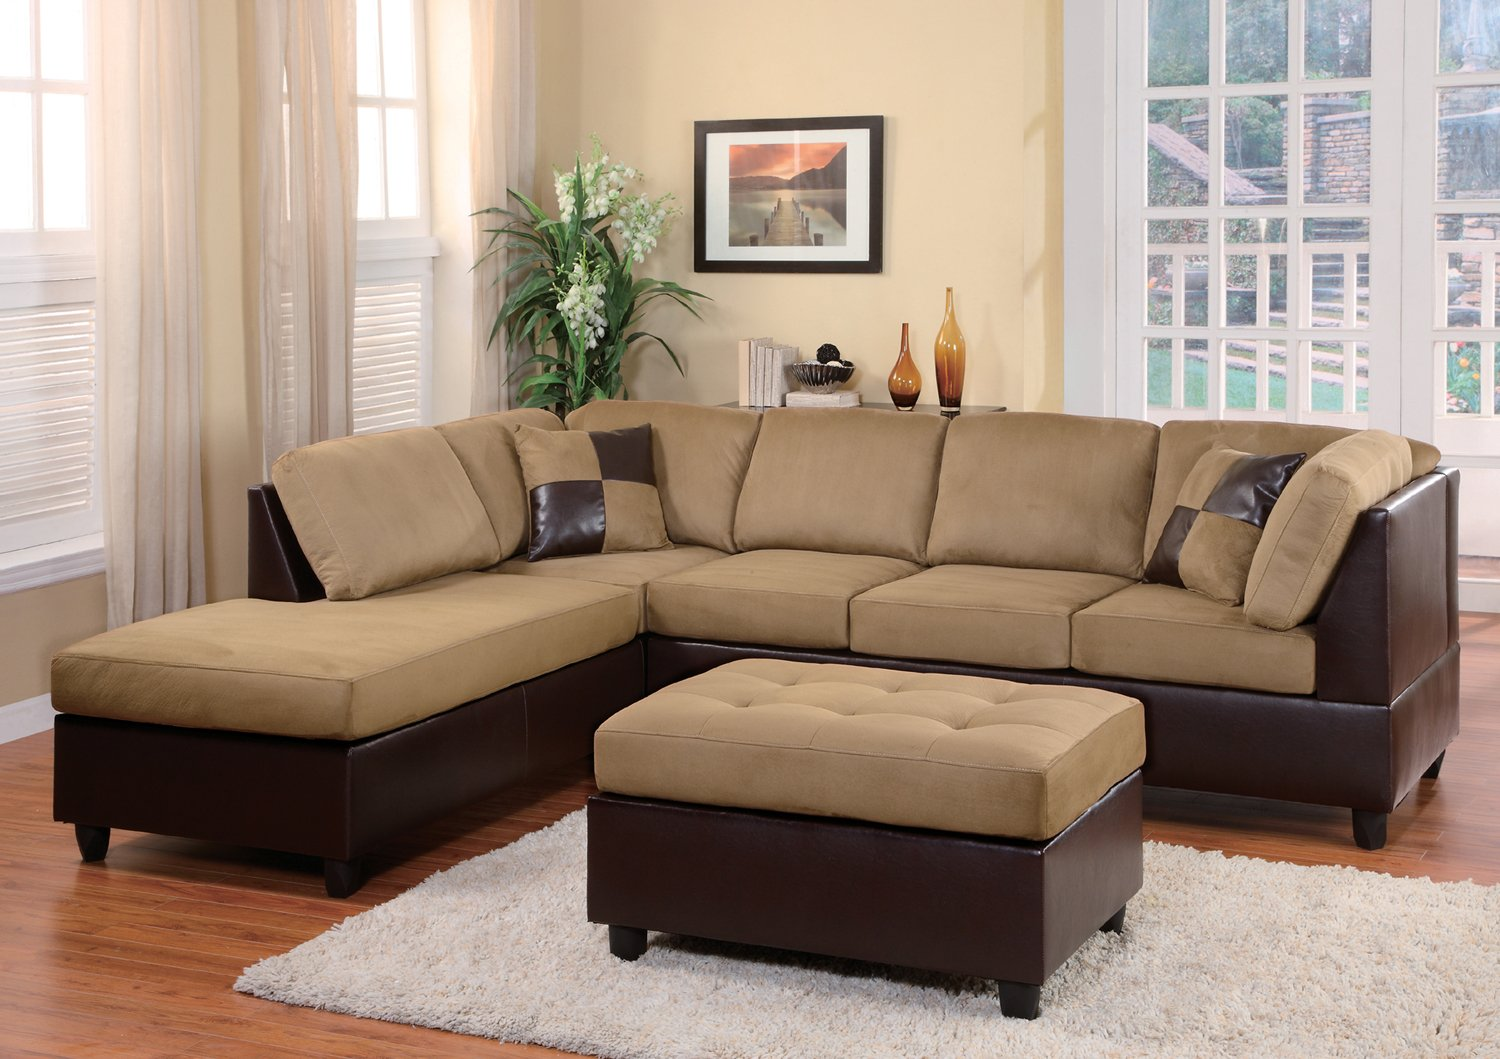 Amazon.com: Homelegance 9909BR Comfort Living Sectional Collection With 2  Pillows, Brown Rhino Microfiber And Dark Brown Faux Leather: Kitchen U0026  Dining Part 58